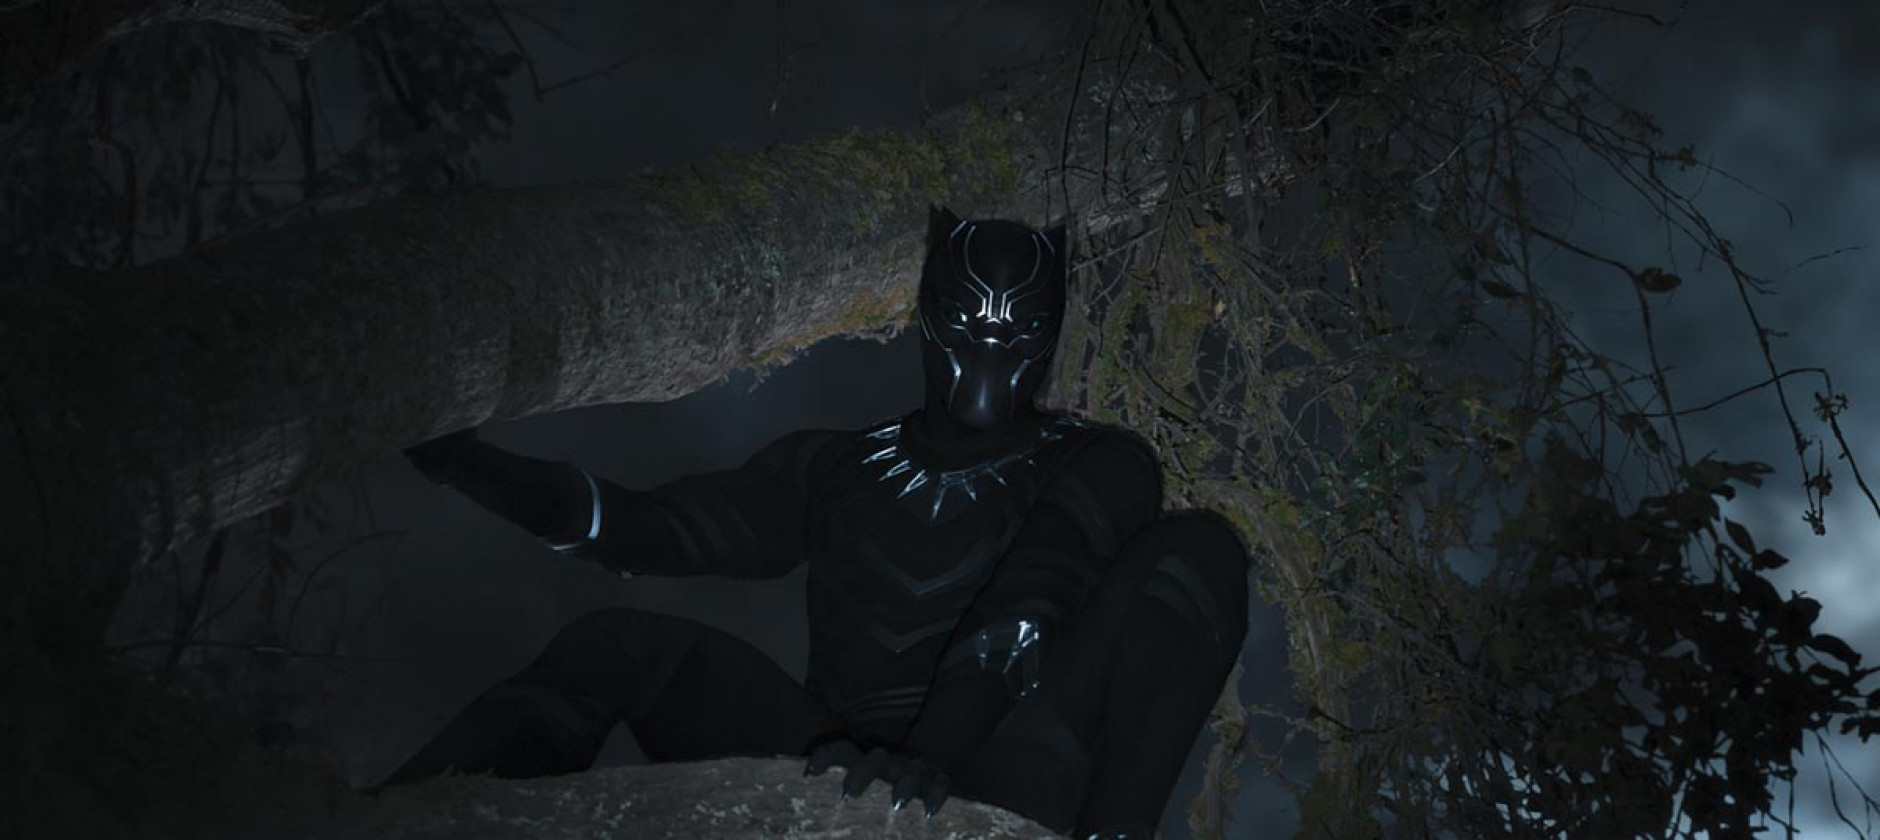 Black Panther - Il guerriero nero